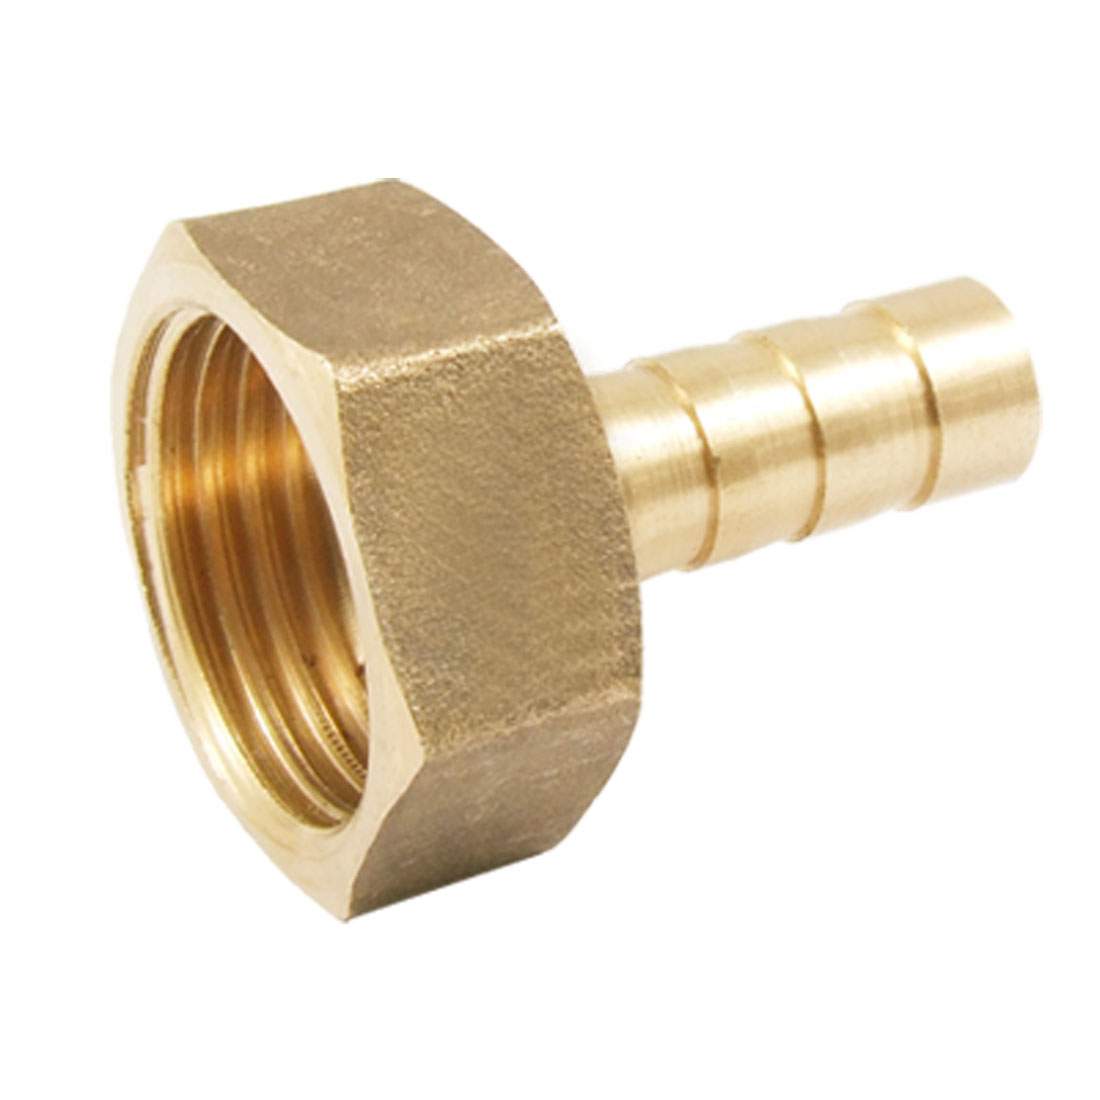 "5/16"" Water Gas Air Hose Barb x 1/2"" PT Thread Brass Fitting Female Barbed Adapter Connector"